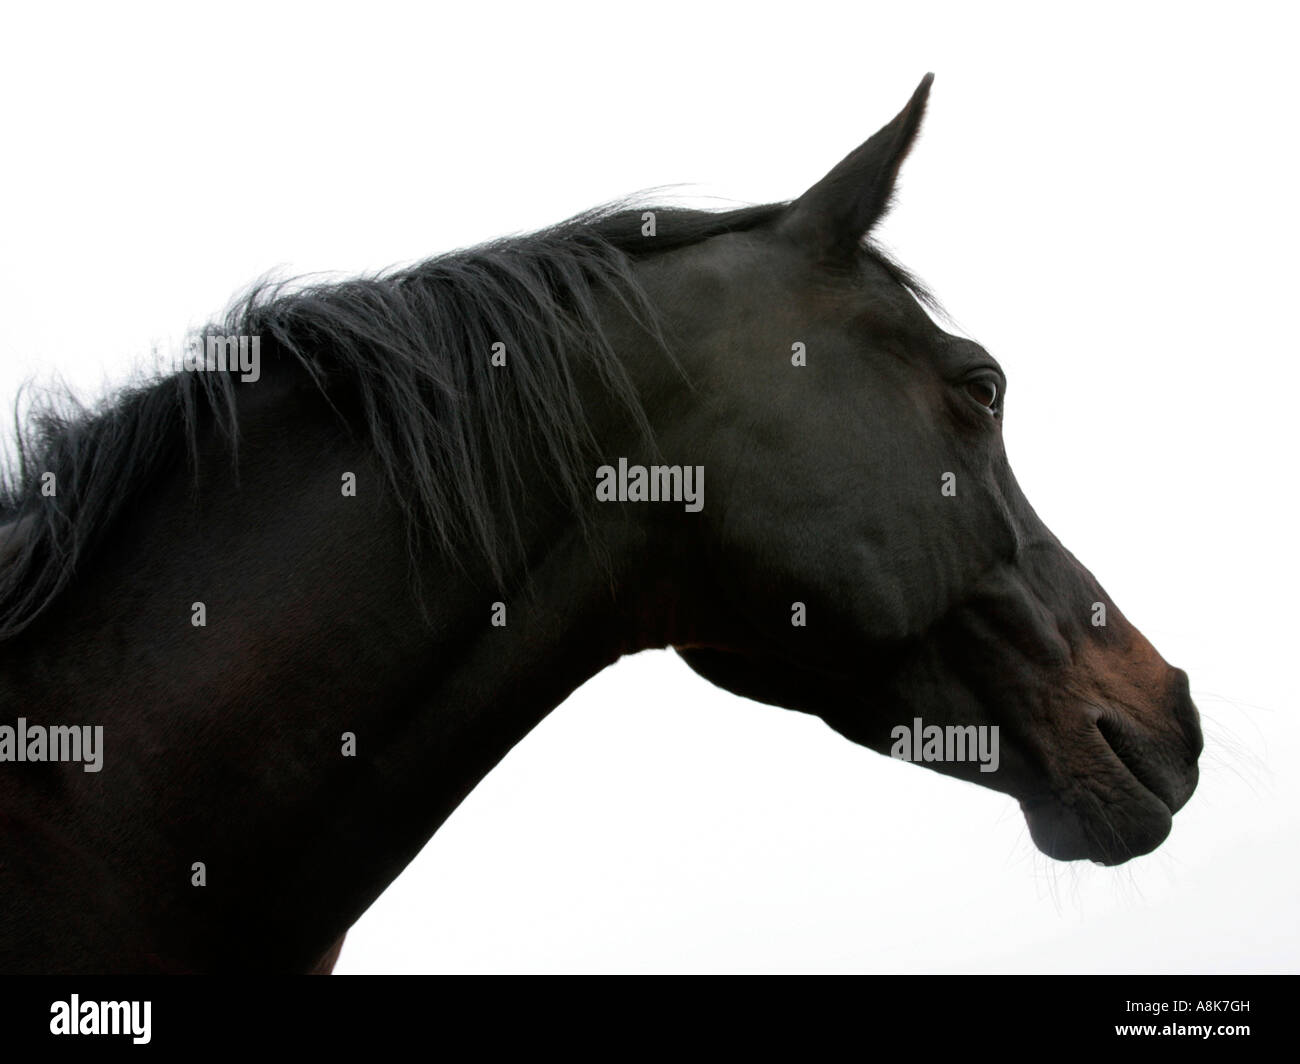 The Sideview Of The Head Of A Black Horse Stock Photo Alamy